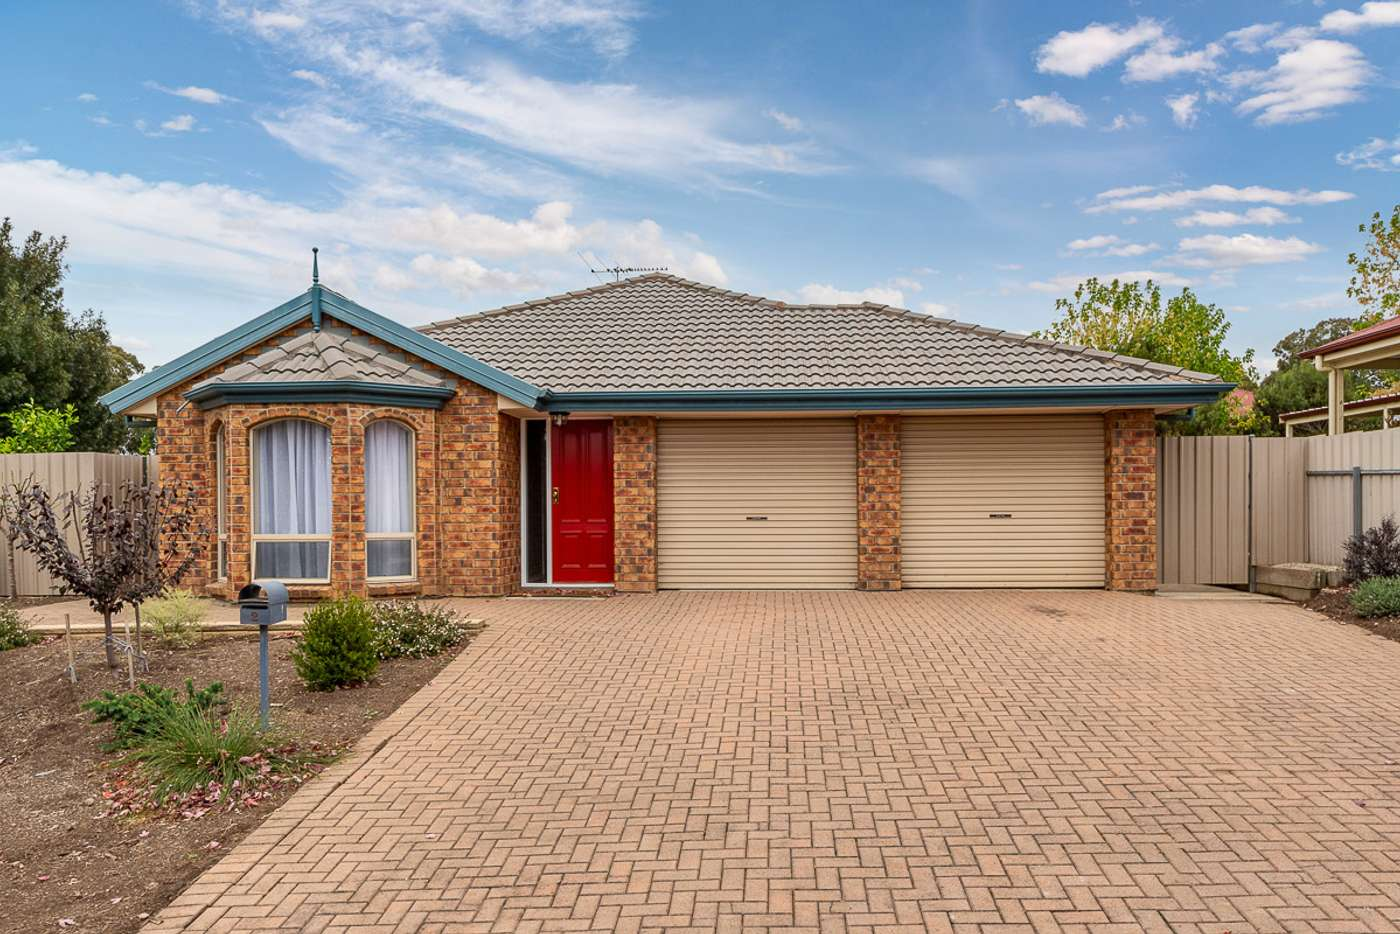 Main view of Homely house listing, 2 Parkview Drive, Mount Barker SA 5251